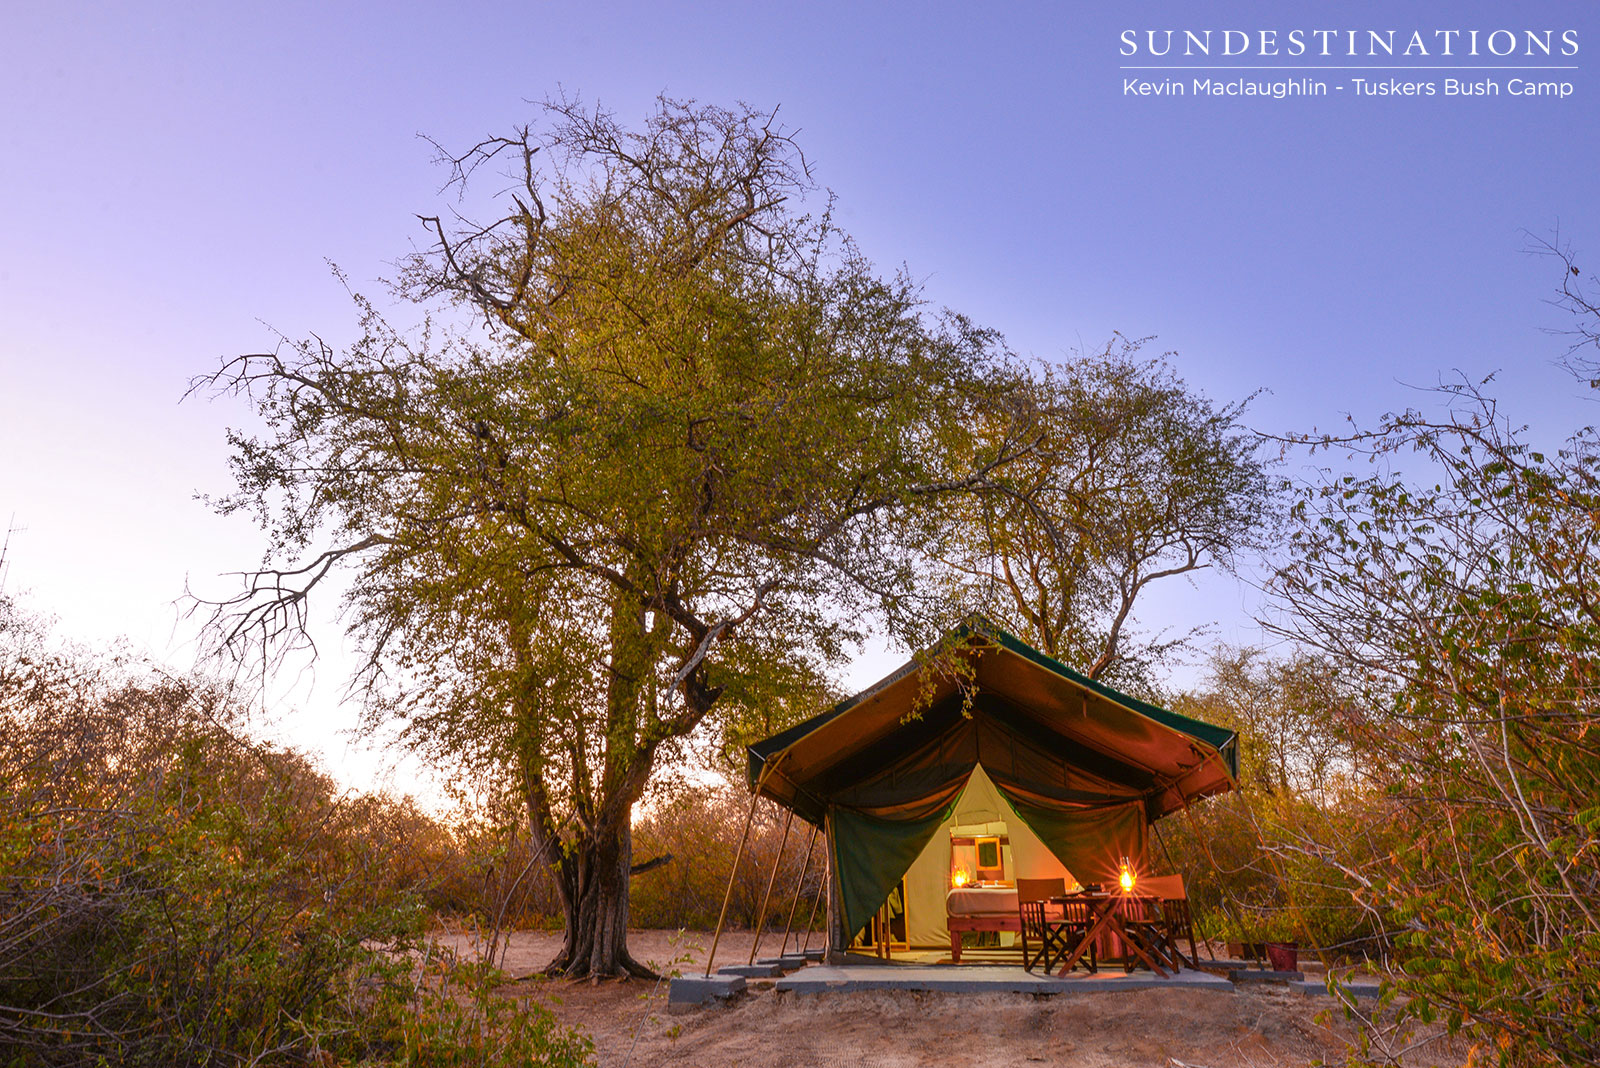 Tuskers Bush Camp: Sunsets and Skies